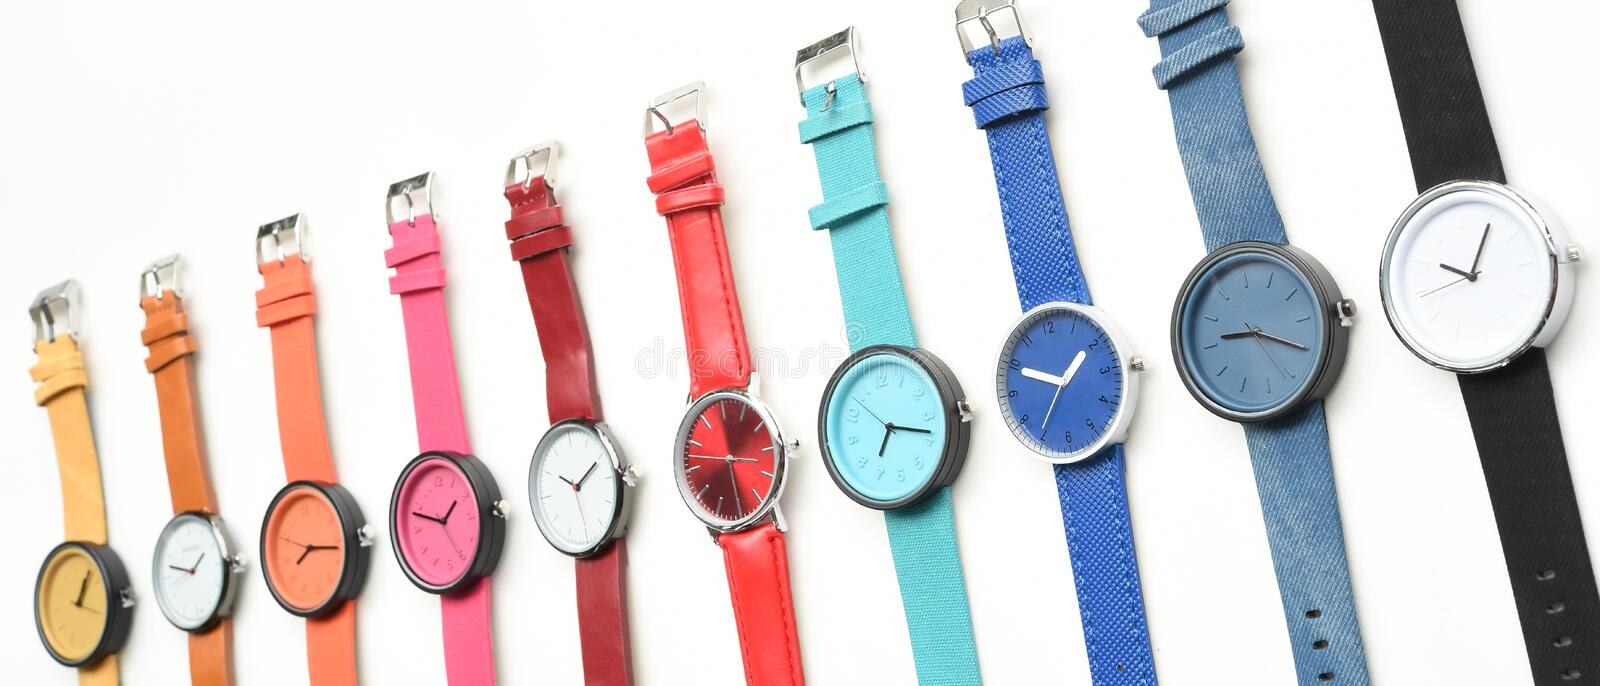 Set of multicolored wristwatches royalty free stock image